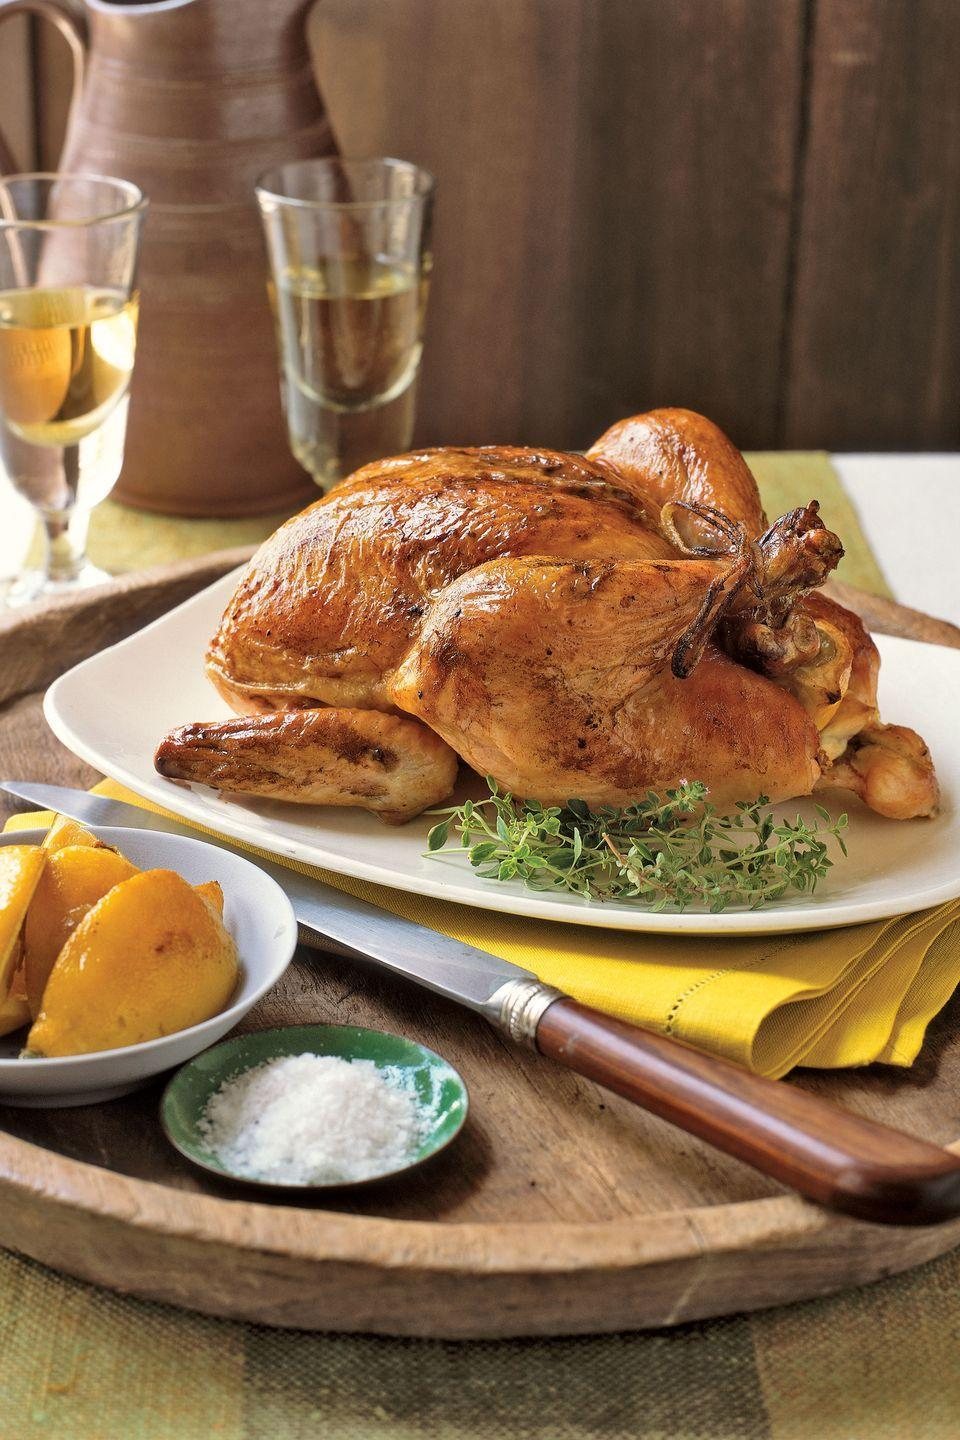 "<p>A lemon inserted into the chicken's cavity during roasting keeps the meat moist and juicy. Seasoning the skin with zest imparts flavor and salt makes it crisp.</p><p><strong><a href=""https://www.countryliving.com/food-drinks/recipes/a1562/roast-lemon-chicken-3677/"" rel=""nofollow noopener"" target=""_blank"" data-ylk=""slk:Get the recipe."" class=""link rapid-noclick-resp"">Get the recipe.</a></strong></p>"